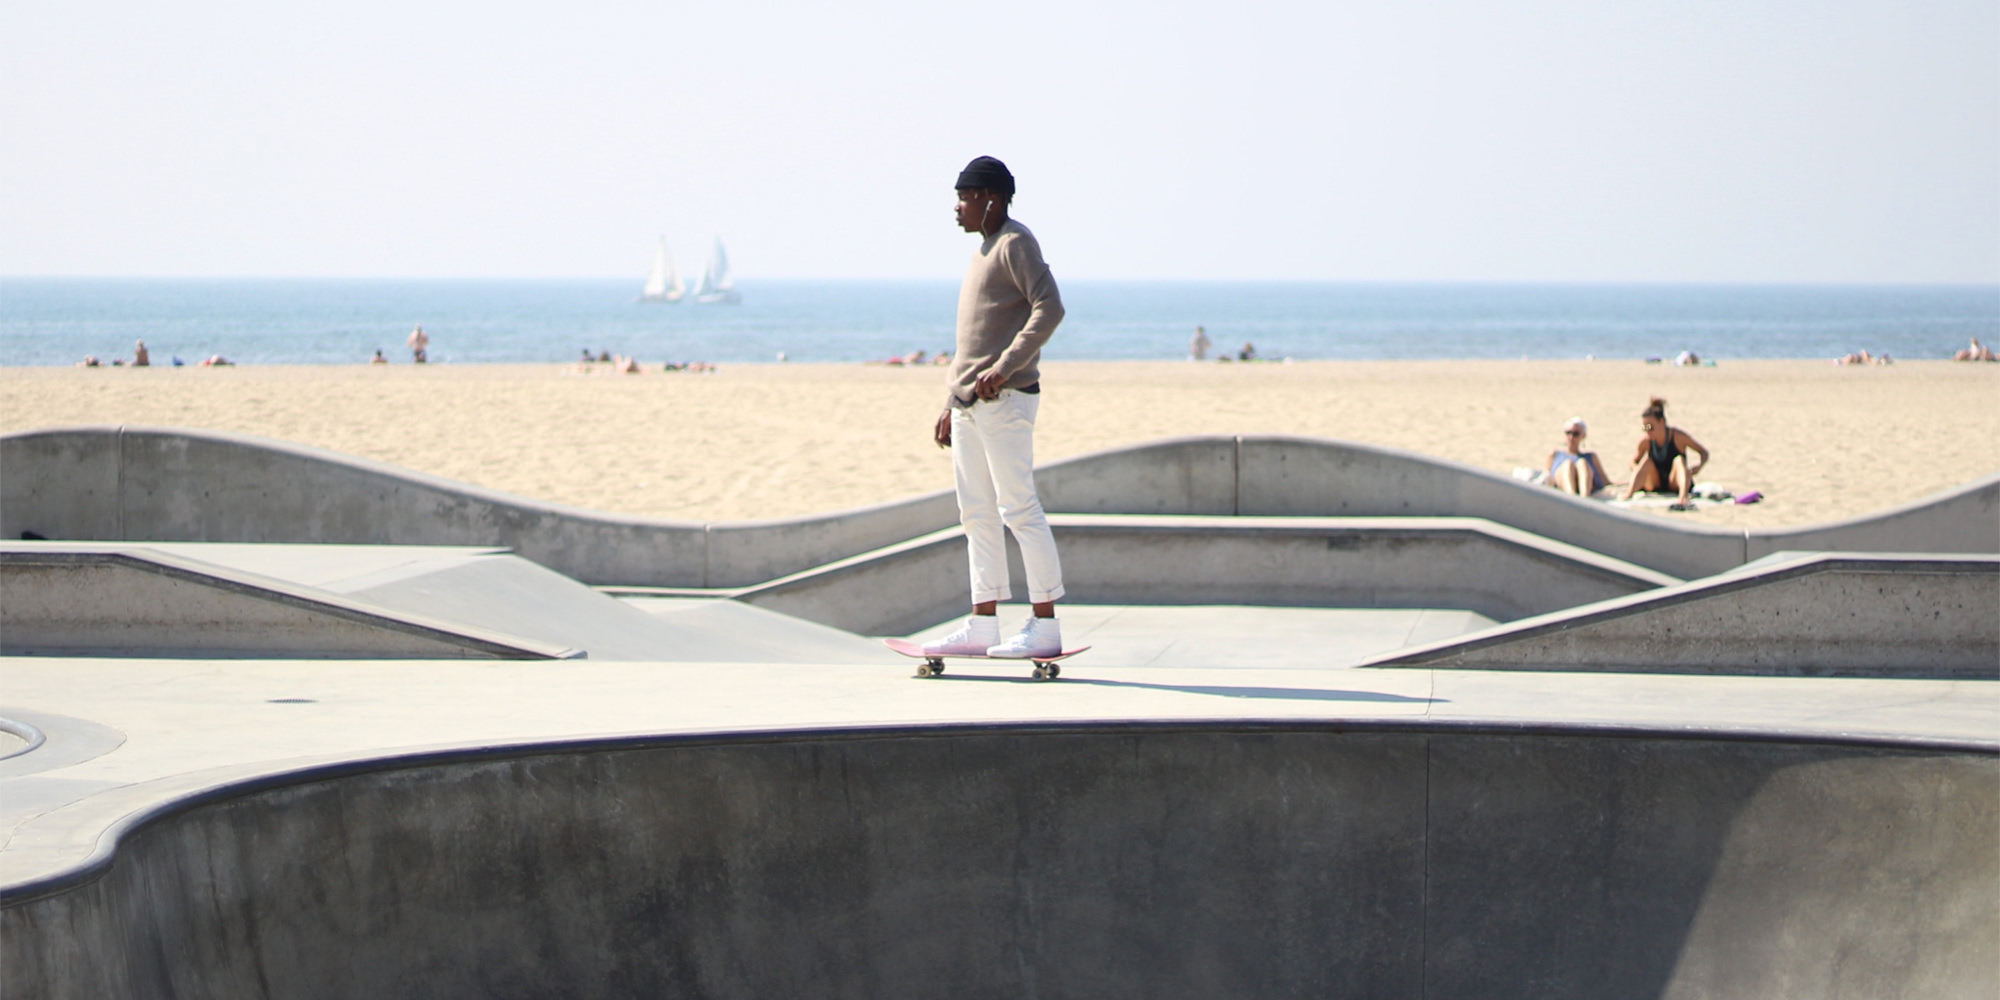 A young black man is skateboarding at a skate park by the beach. The sandy shores and the ocean can be seen in the background.